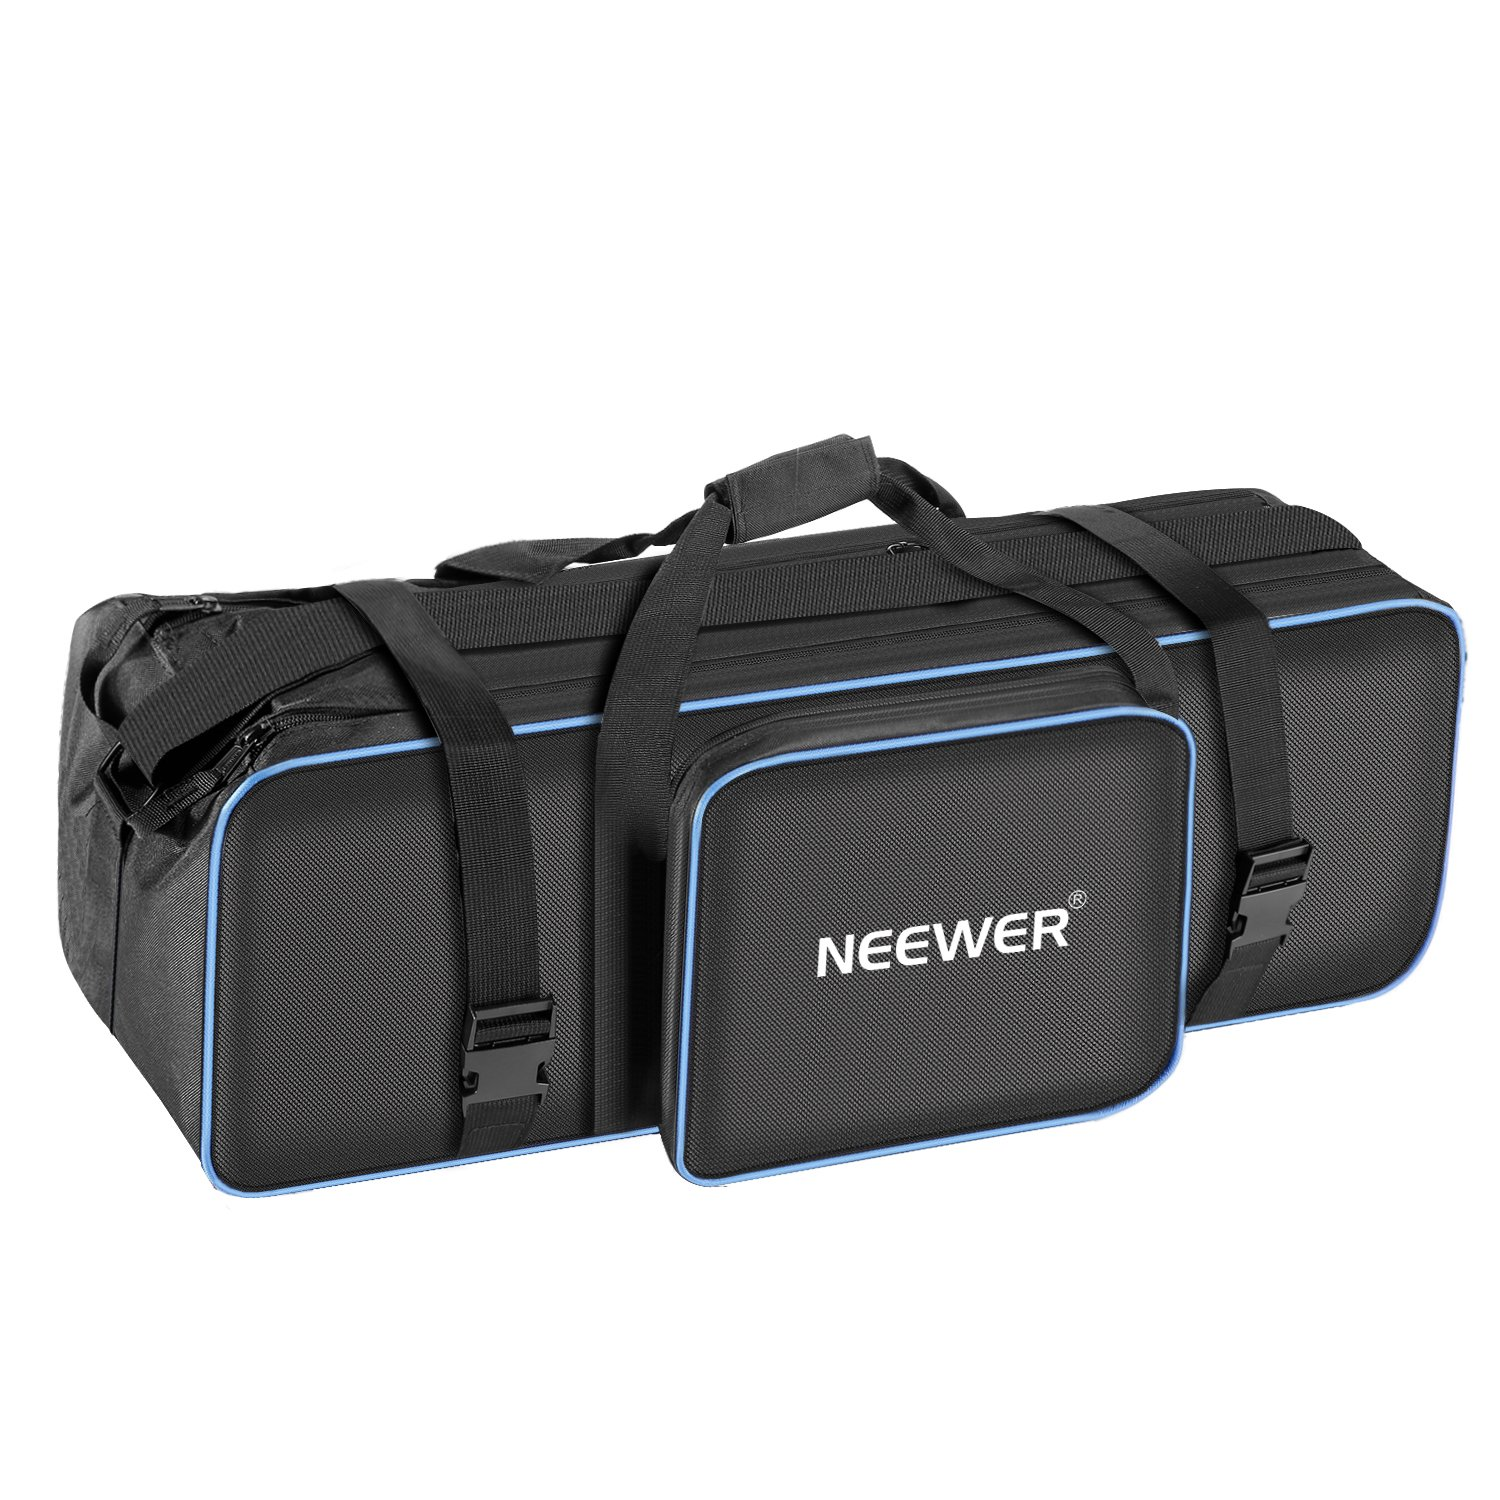 Neewer Large Photo Studio Photography Carrying Case Bag 29.1x10.6 x 9.84 inches with Shoulder Strap and Handle for Light Stand, Tripod, Umbrella, LED Light, Flash and Other Accessories (Black/Blue) by Neewer